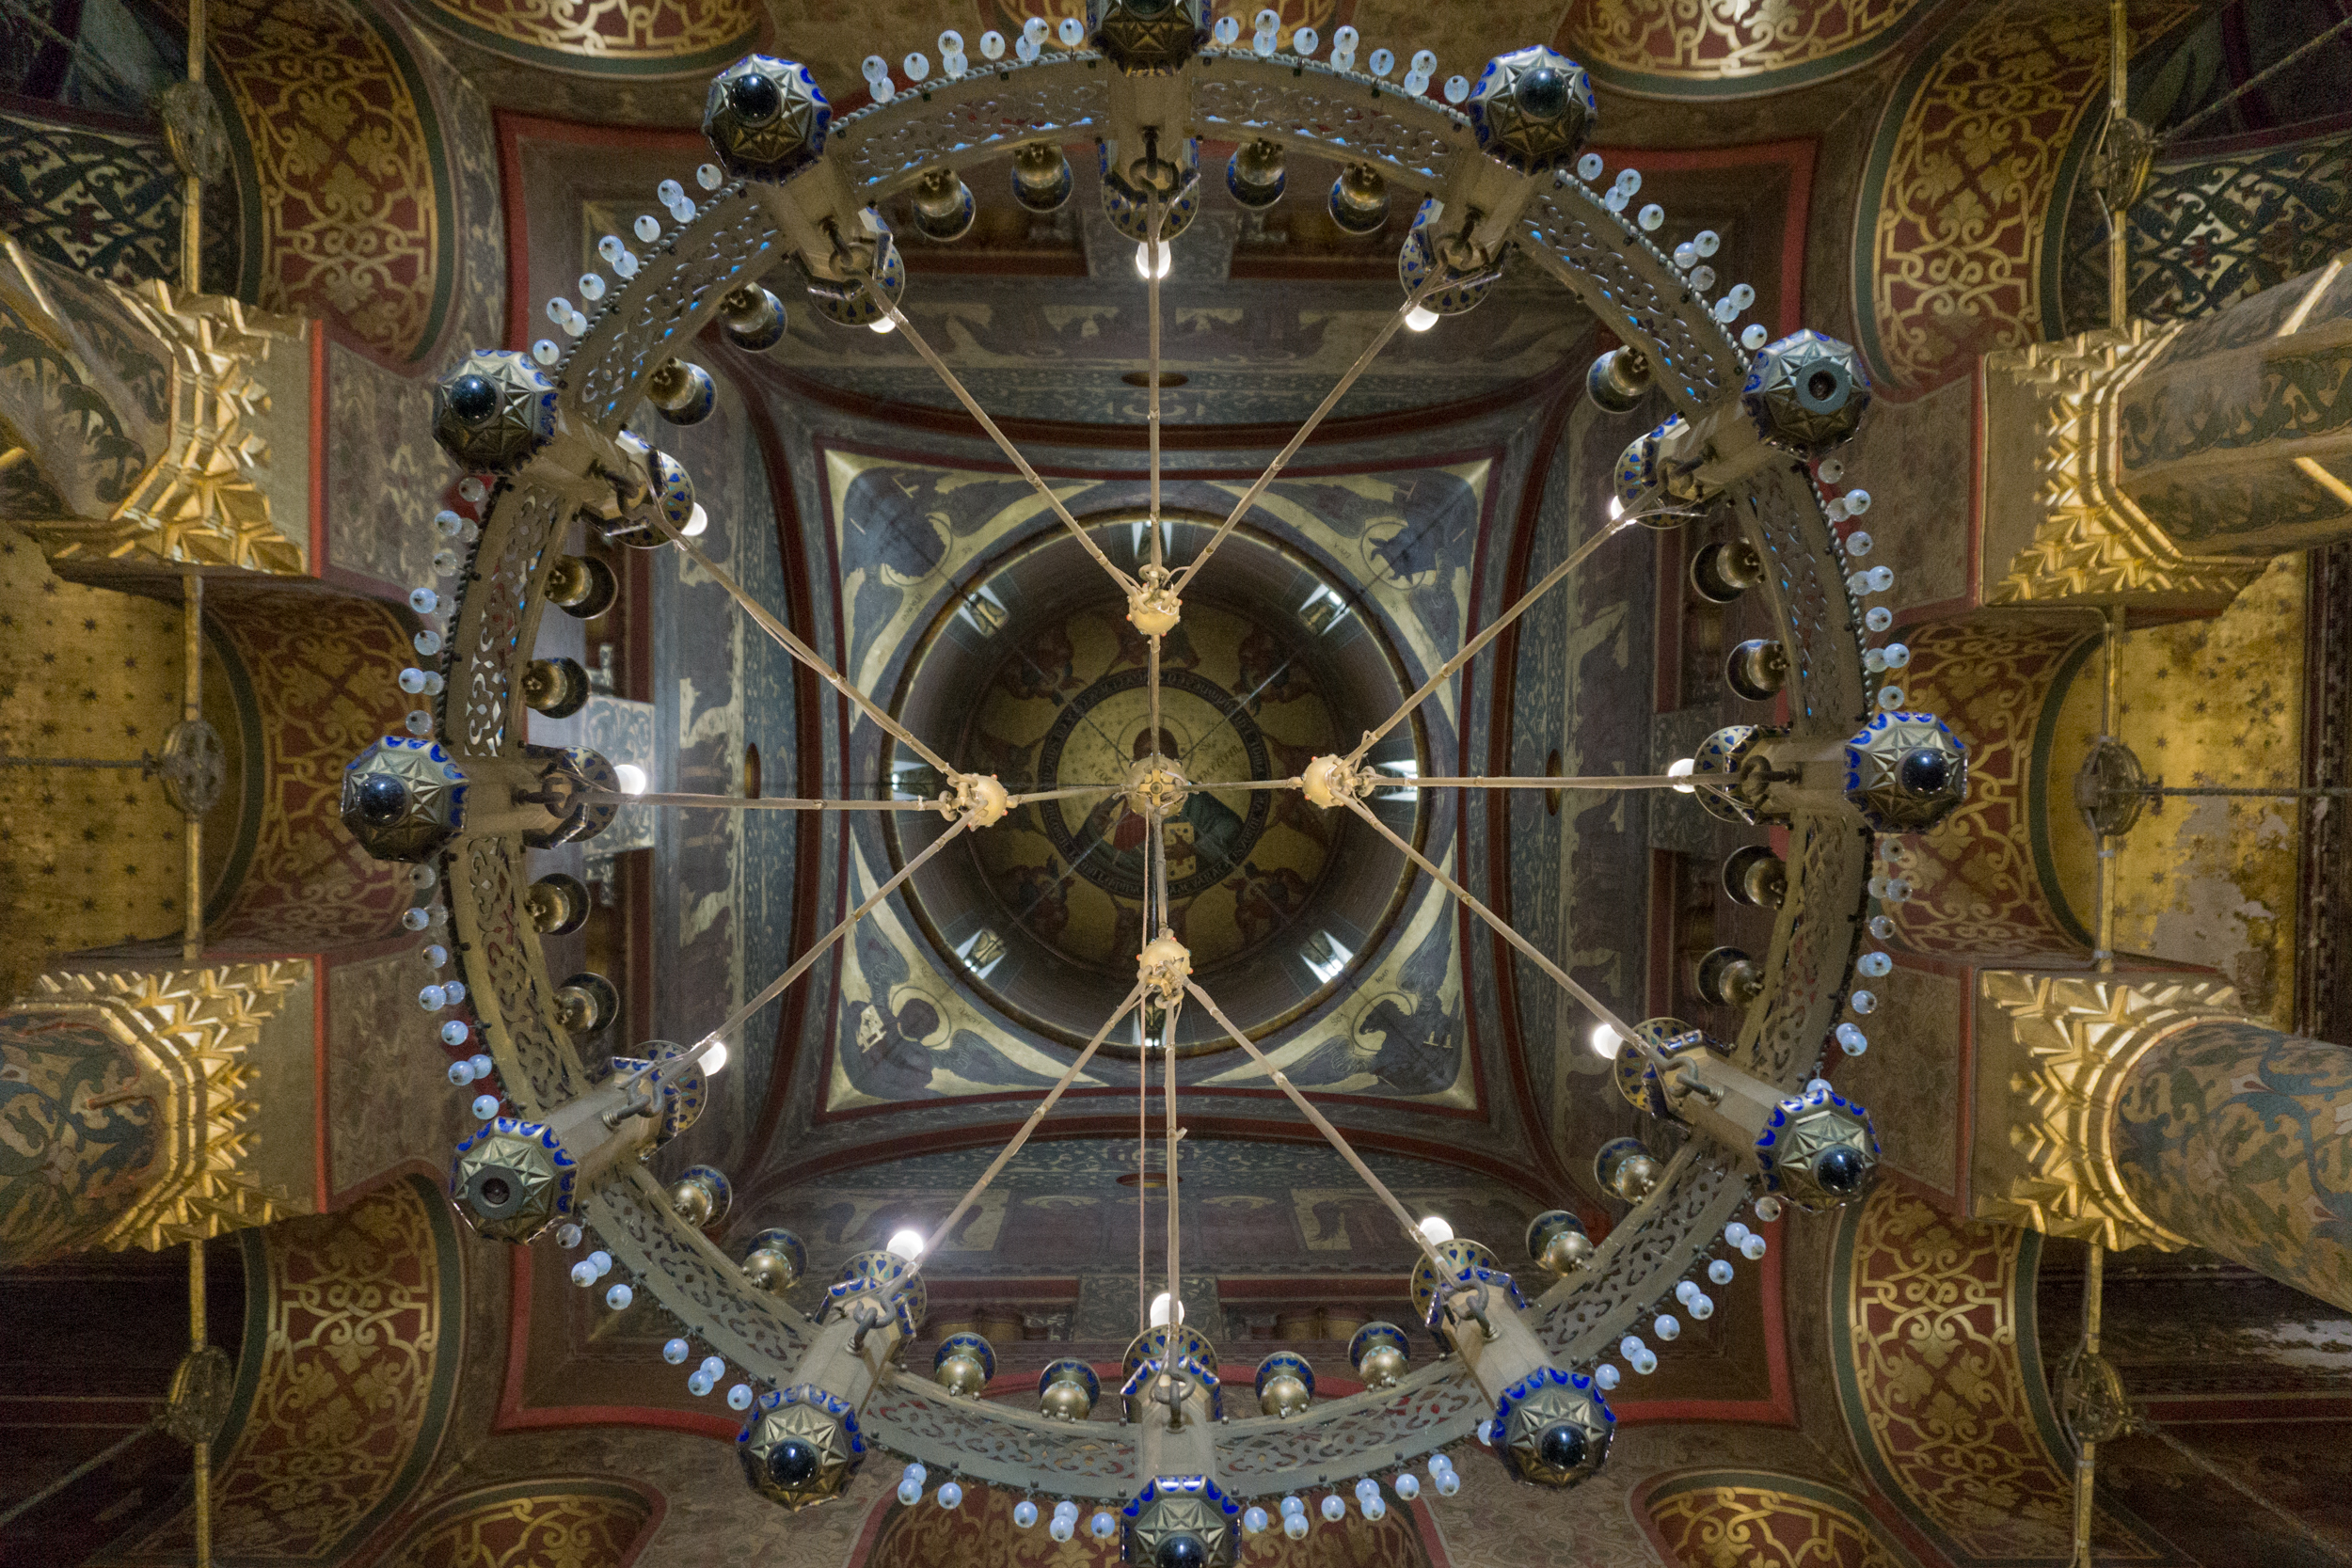 Romania: The ceiling of a church in Transylvania